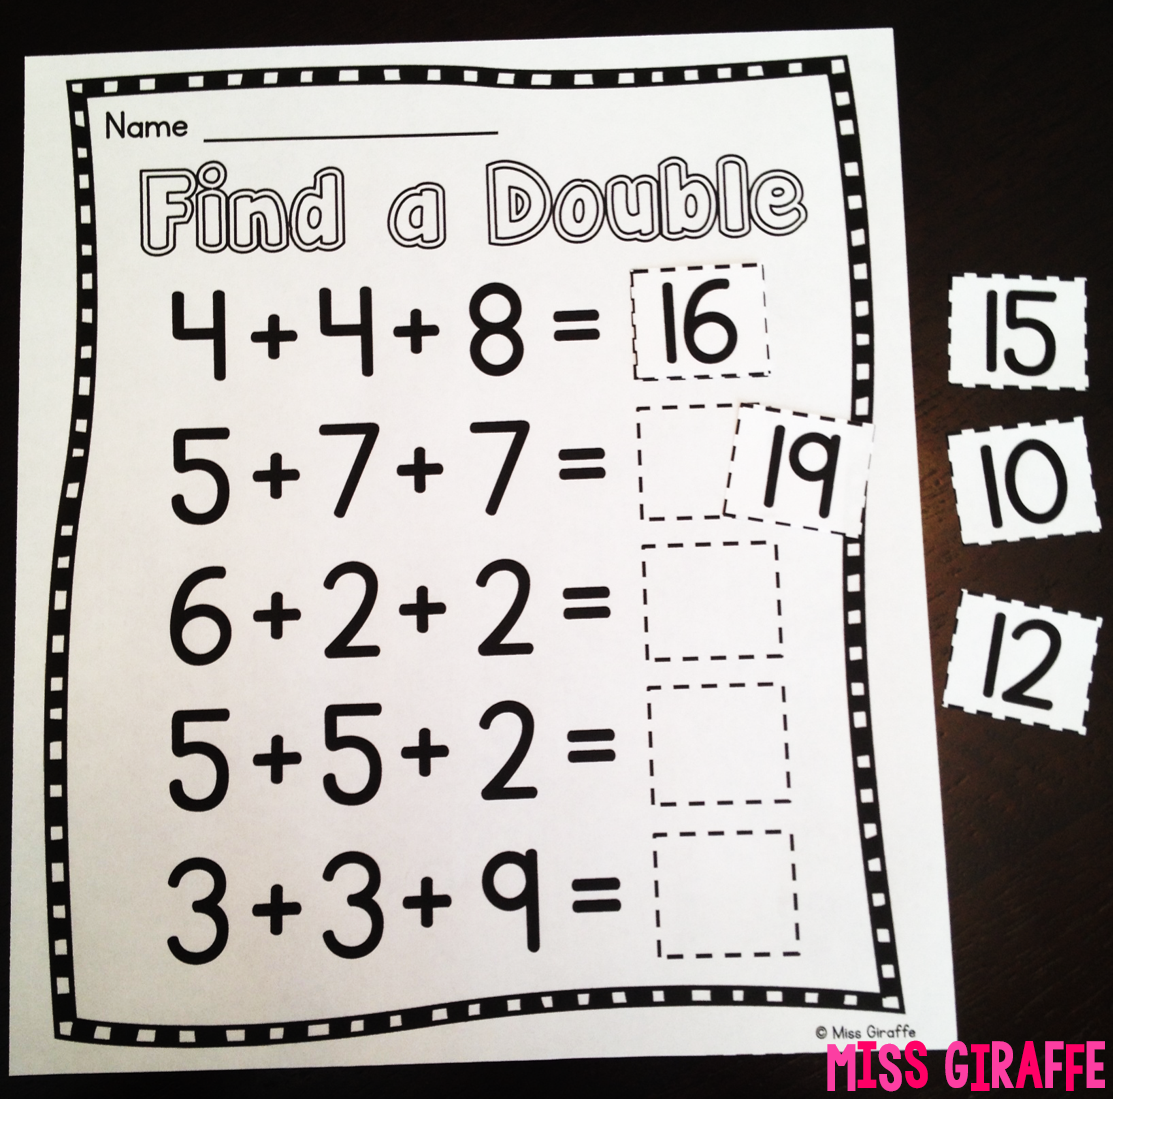 medium resolution of Miss Giraffe's Class: Adding 3 Numbers